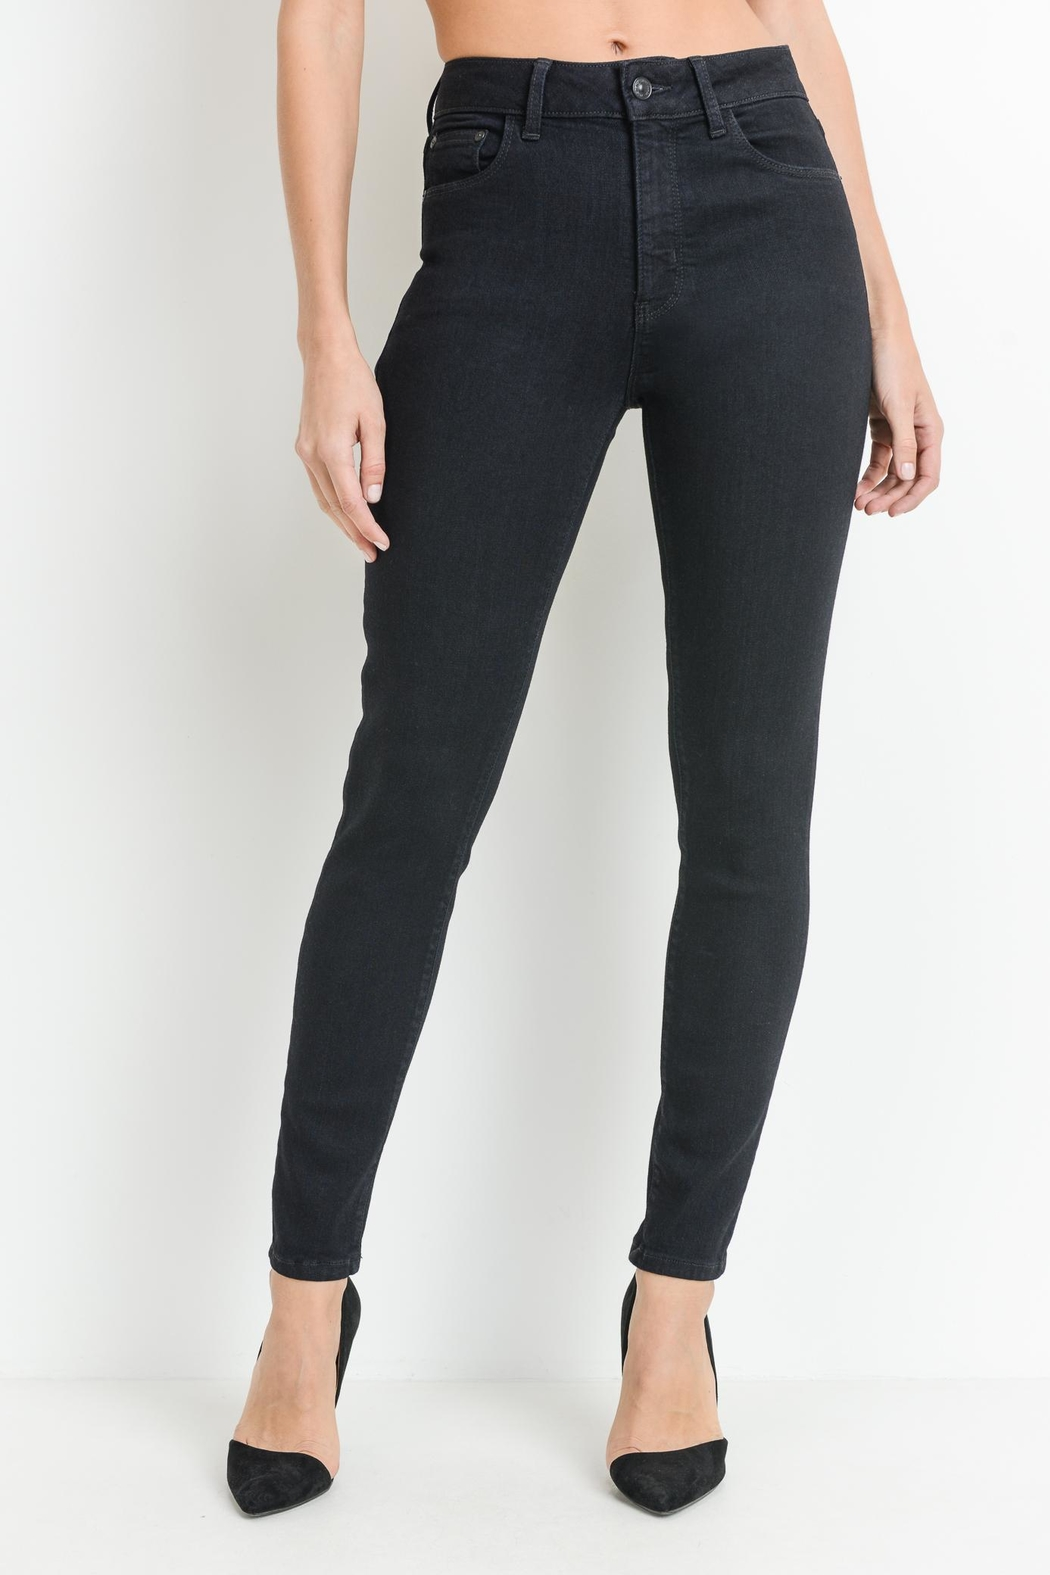 just black High Rise Jeans - Main Image